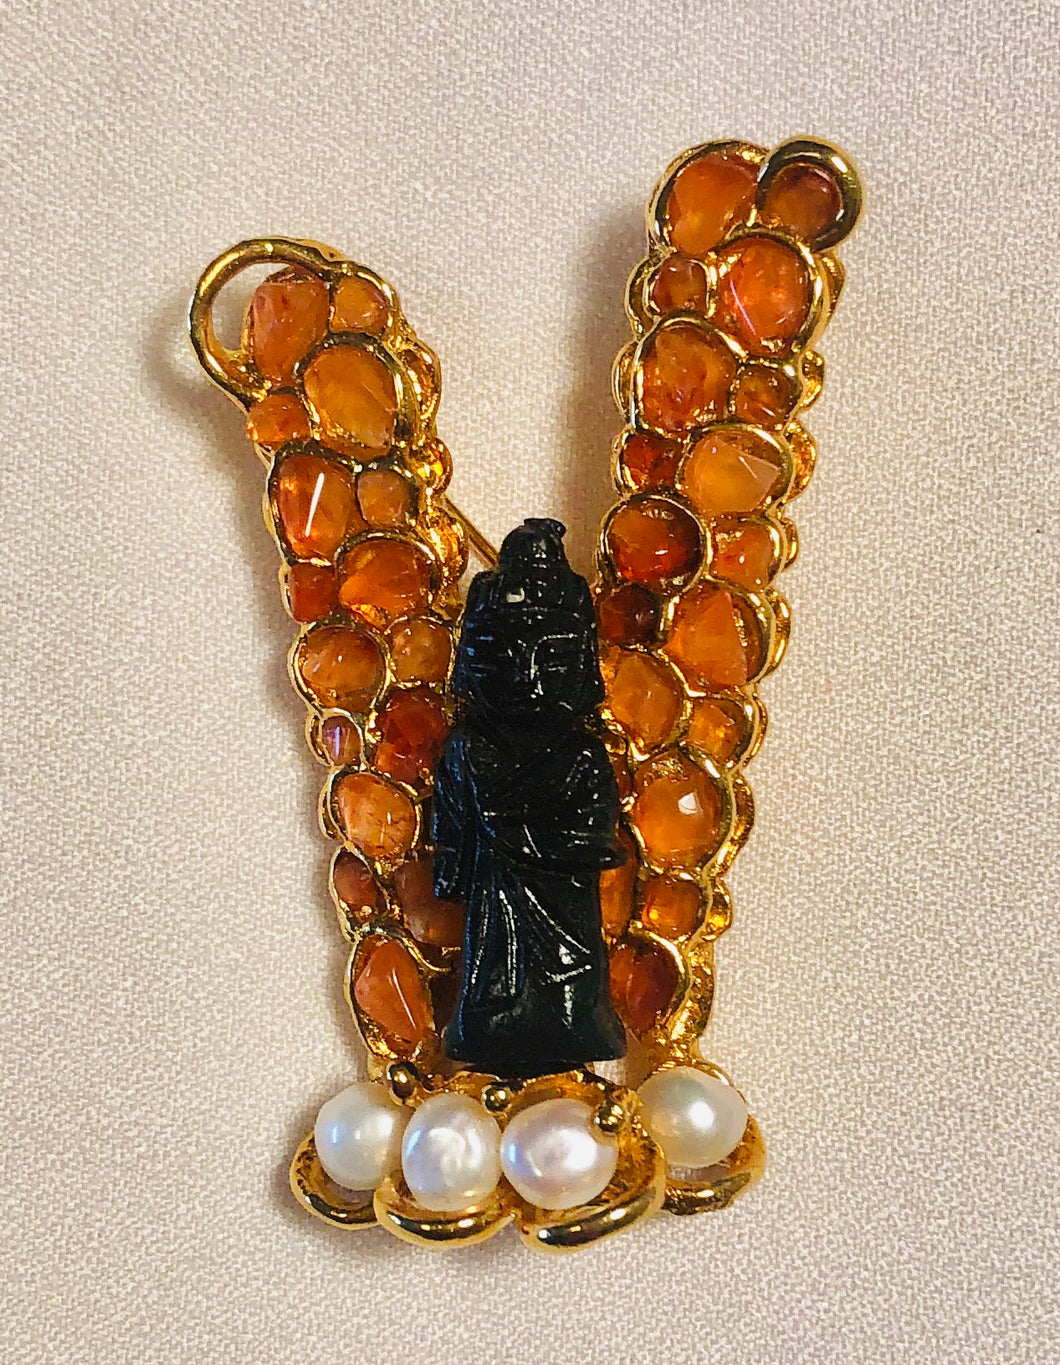 Carnelian and Fresh Water Pearl Brooch